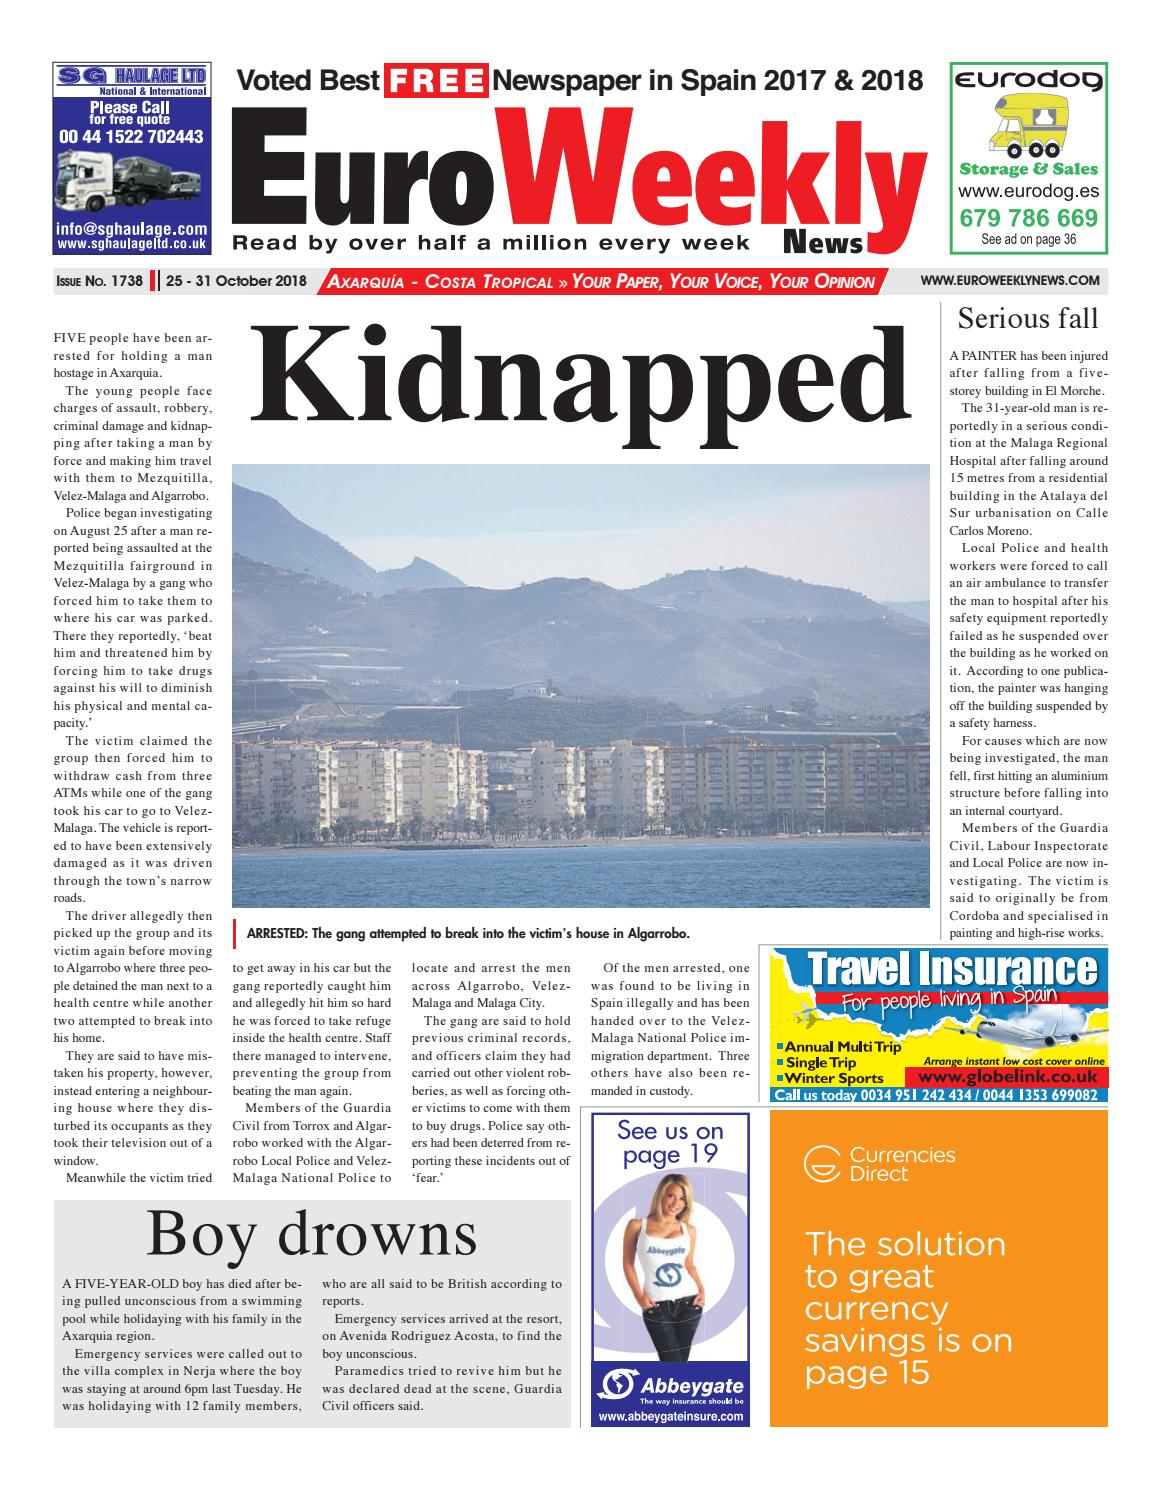 Euro Weekly News Axarquia October 25 31 2018 Issue 1738